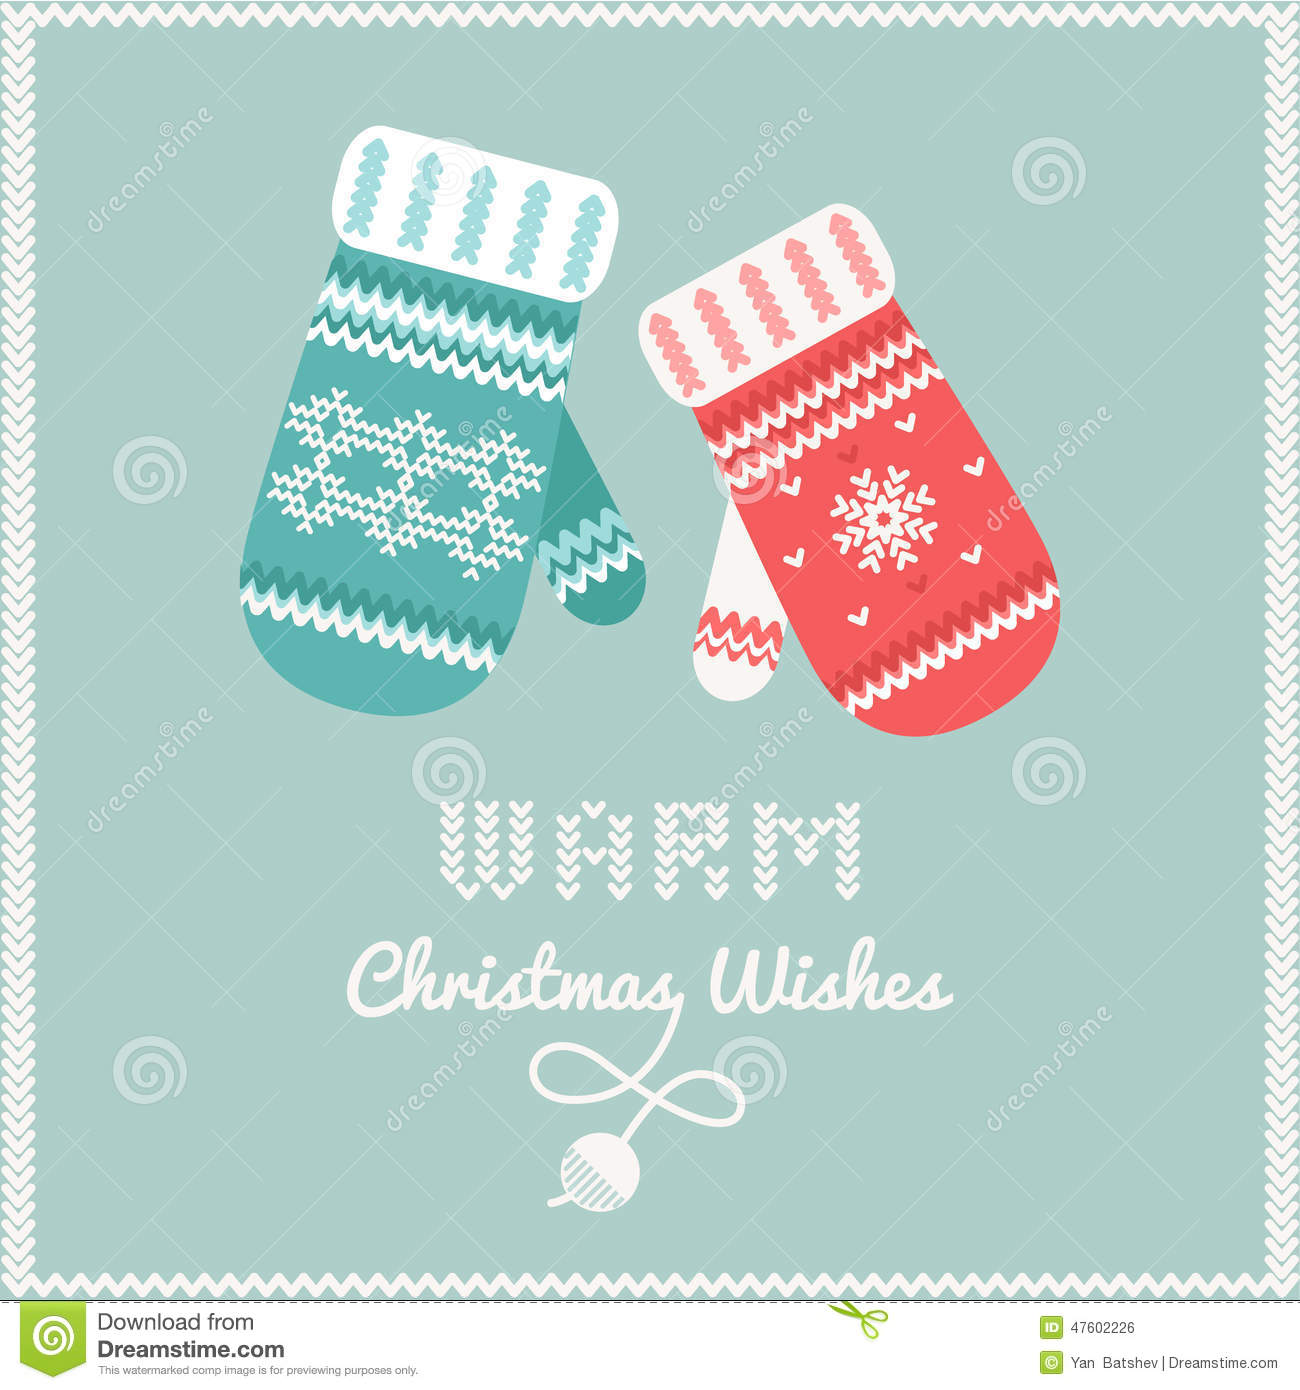 Warm christmas wishes for cards merry christmas and happy new year once m4hsunfo